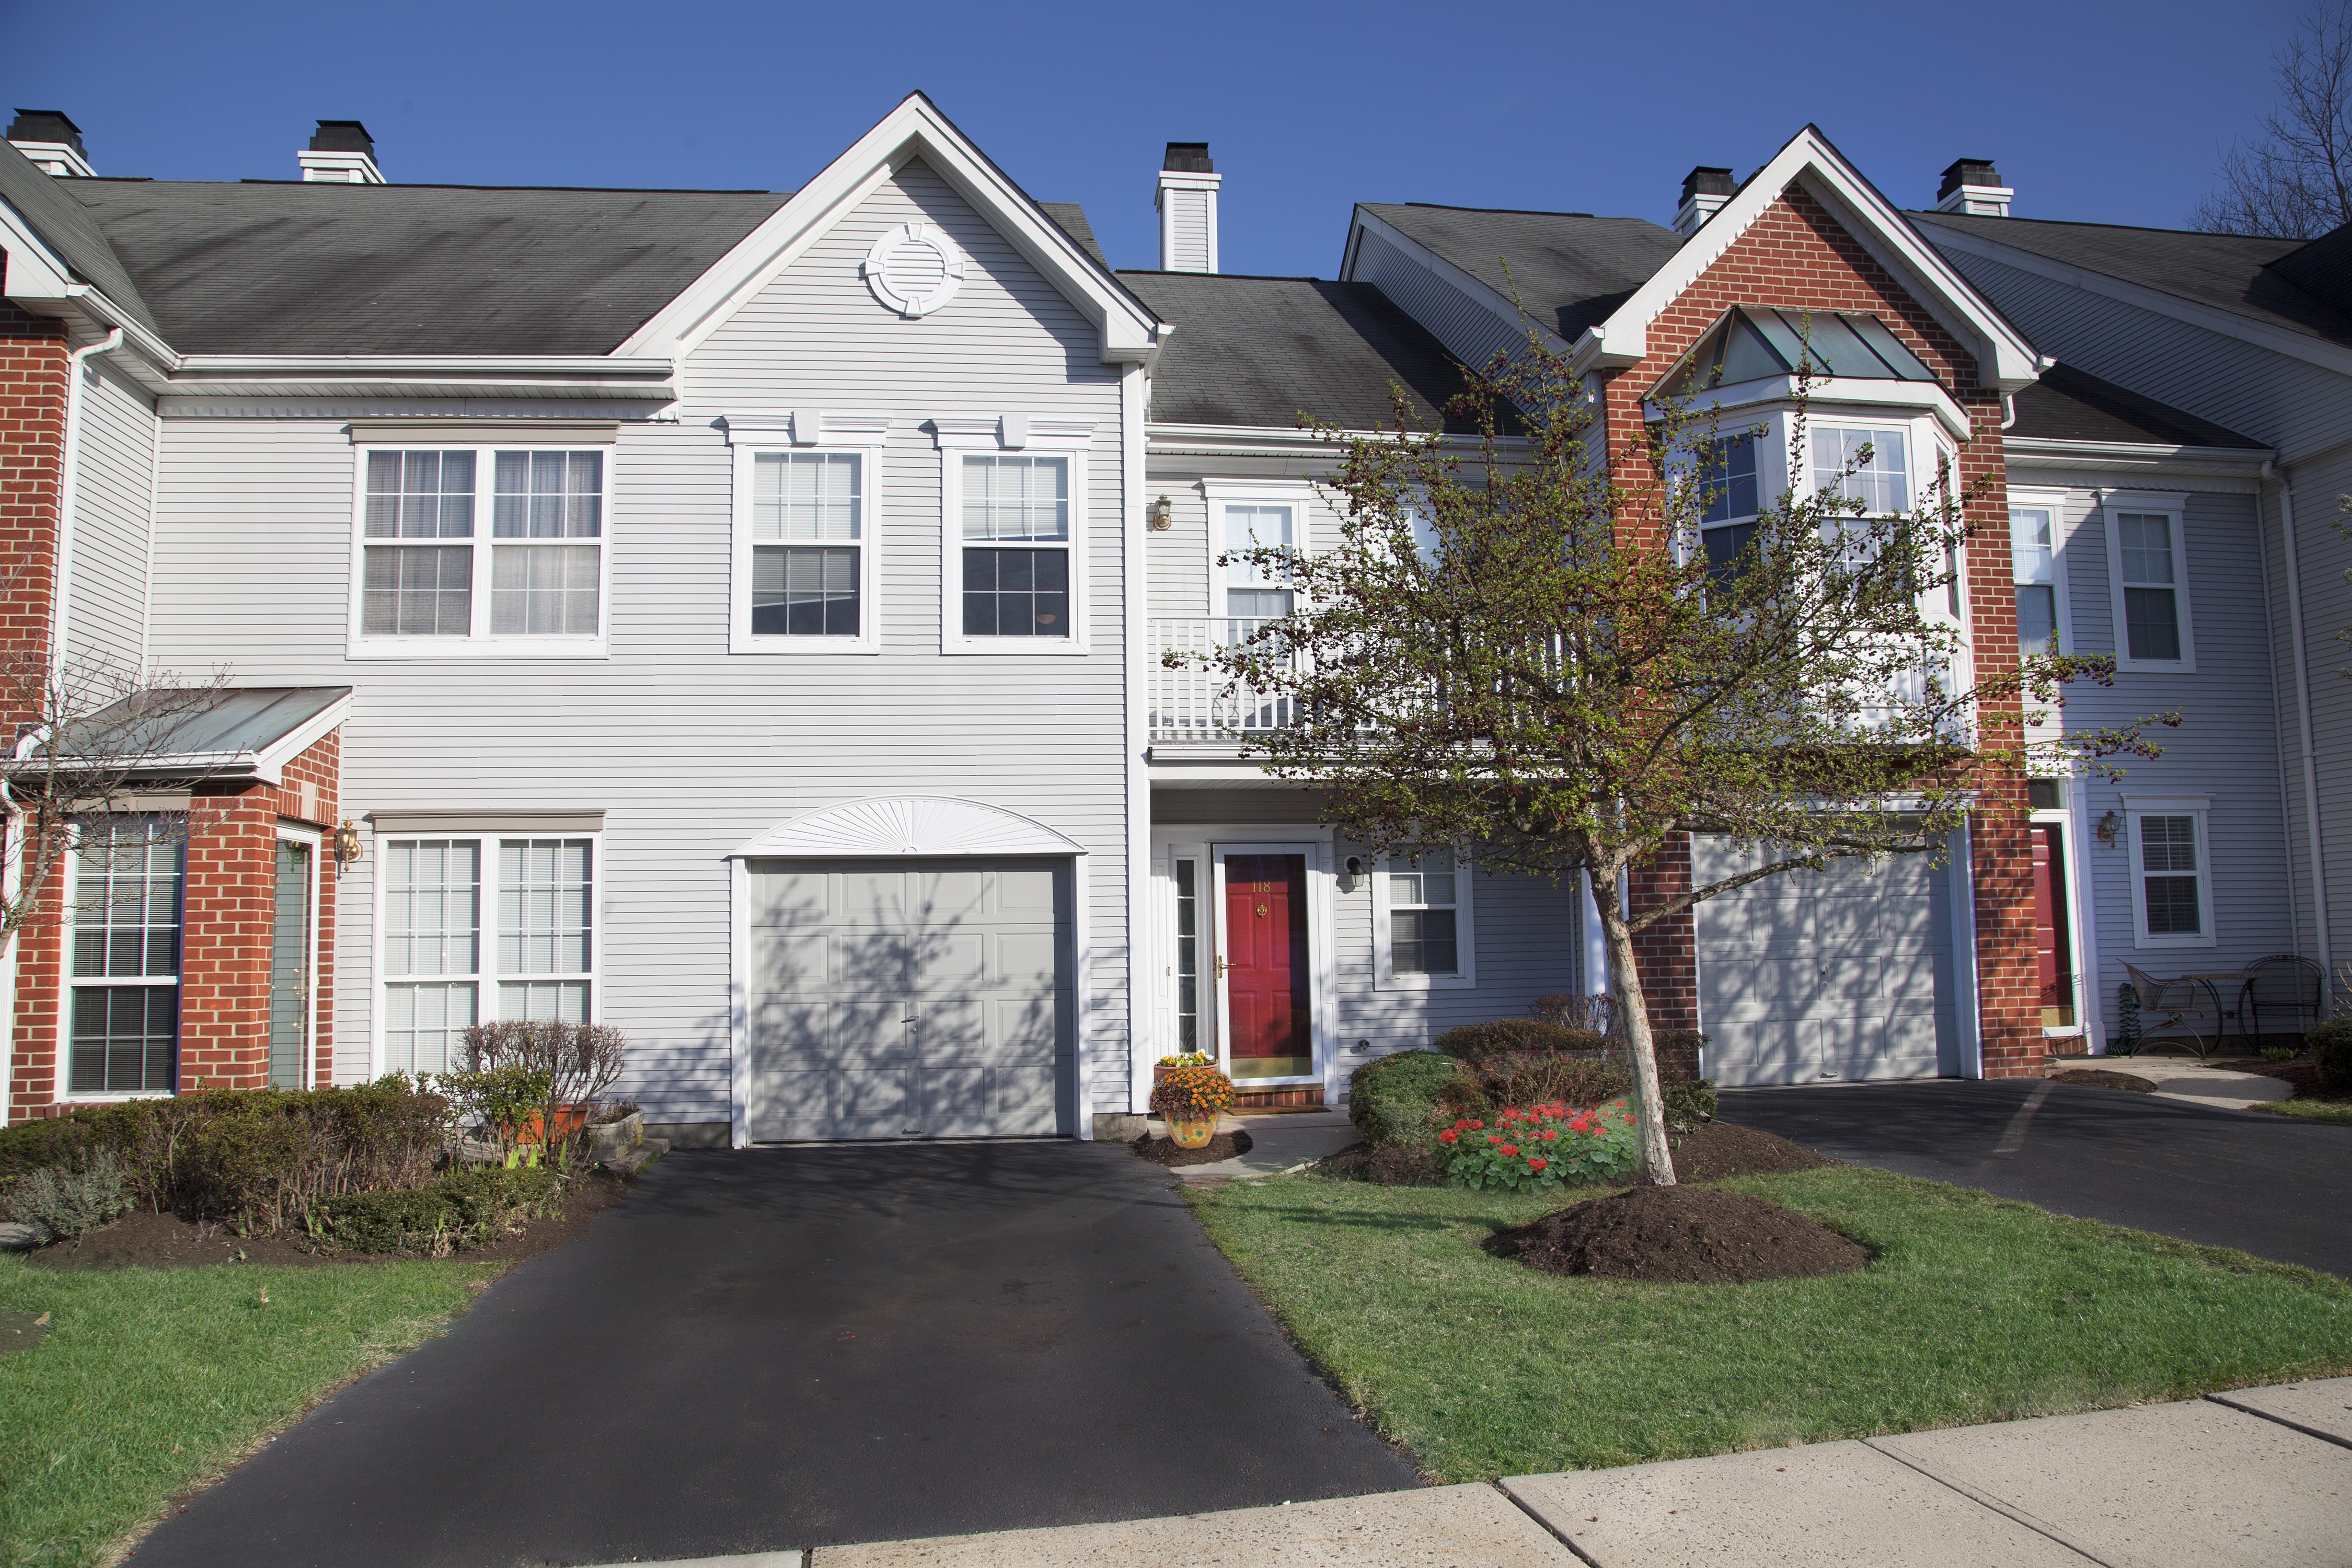 Townhouse for Sale at Hidden Meadows 118 Tanya Circle Ocean, New Jersey 07712 United States